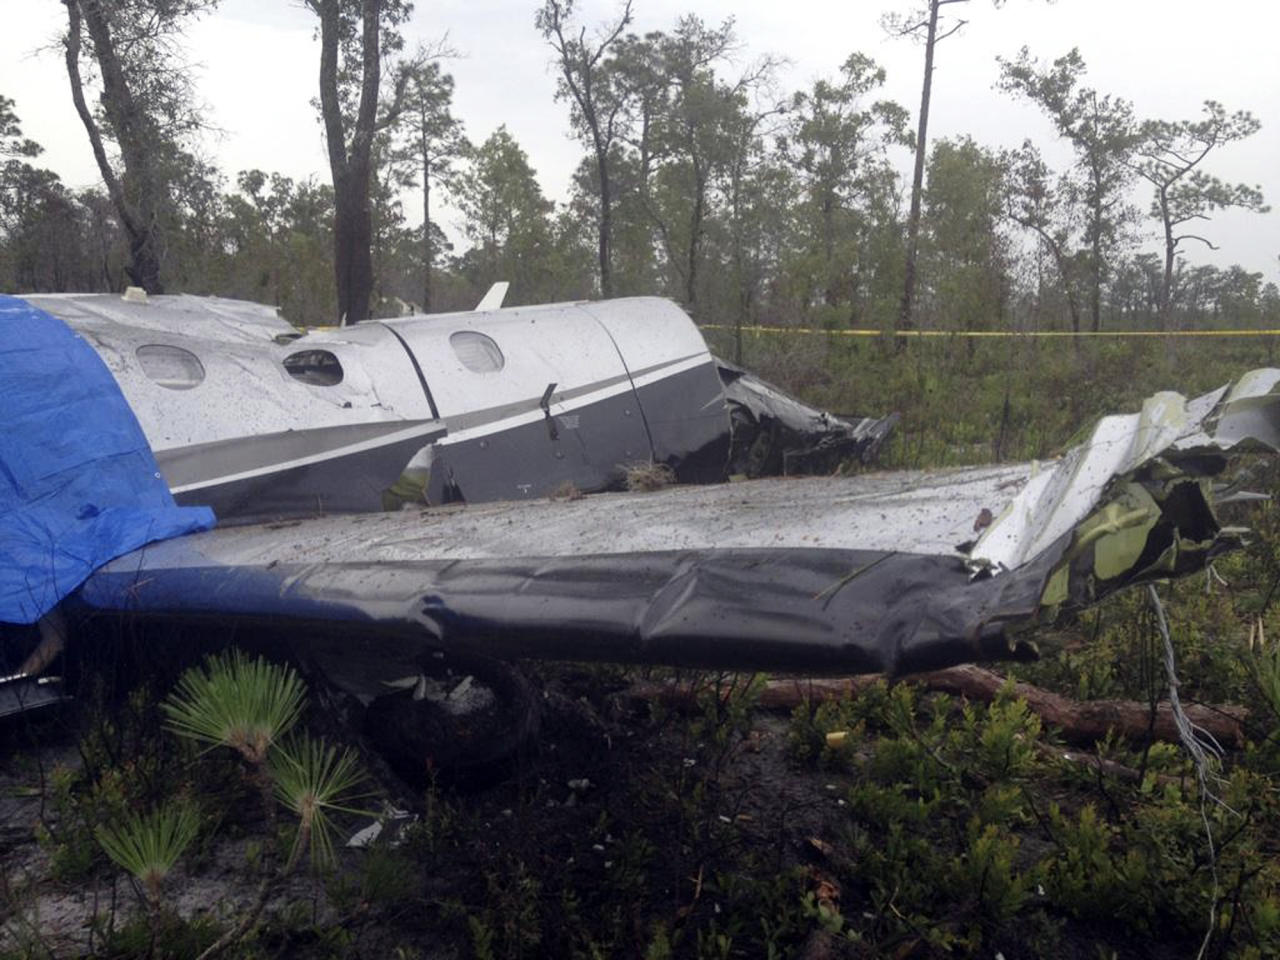 This photo provided by the Polk County Sheriff's Office shows the wreckage of a Pilatus PC-12 single-engine turboprop passenger plane that crashed near Lake Weohyakapka, aka Lake Walk In the Water, in southeast Polk County, Fla. on Thursday, June 7, 2012. Ronald Bramlage, 45, of Junction City, Kan., who was piloting the plane, his wife Rebecca and their four children were killed in the crash. (AP Photo/Polk County Sheriff's Office)